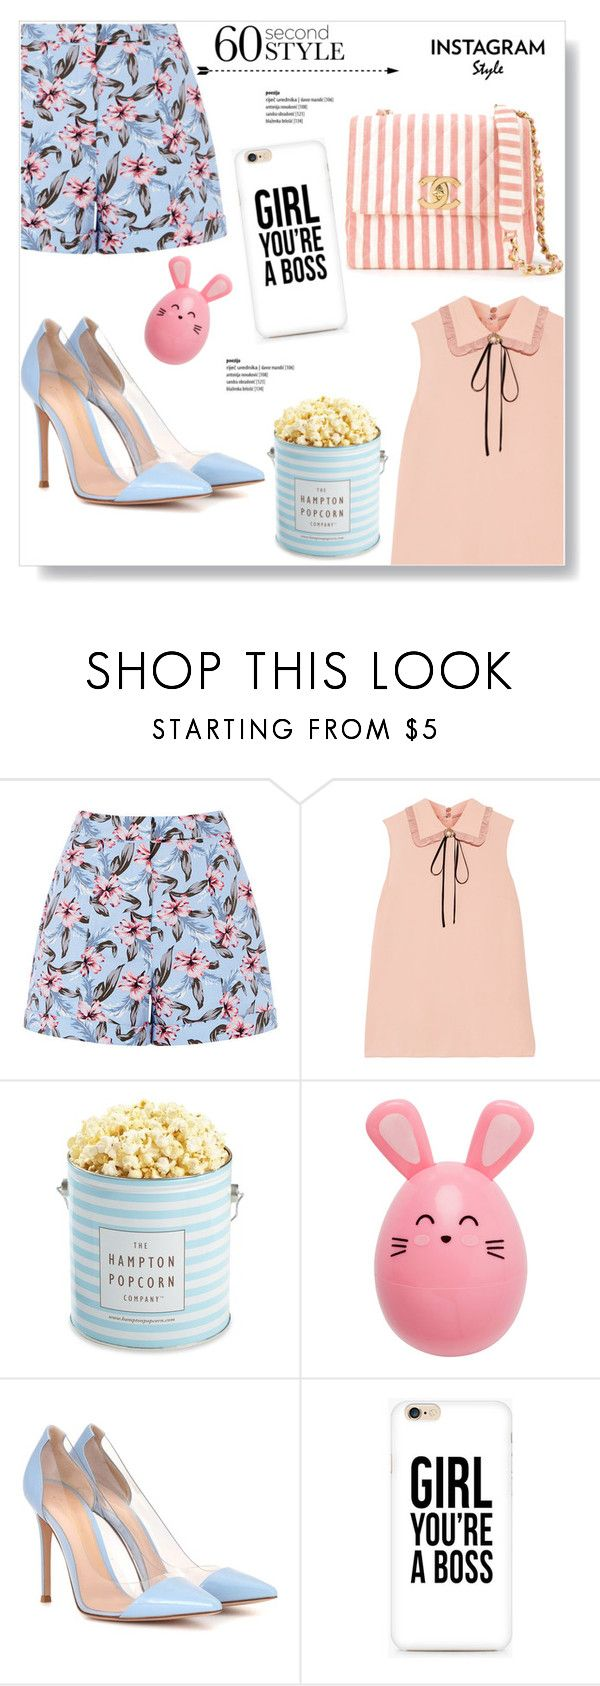 """""""Girl You're A Boss"""" by viola279 ❤ liked on Polyvore featuring Miu Miu, The Hampton Popcorn Company, Gianvito Rossi and Chanel"""